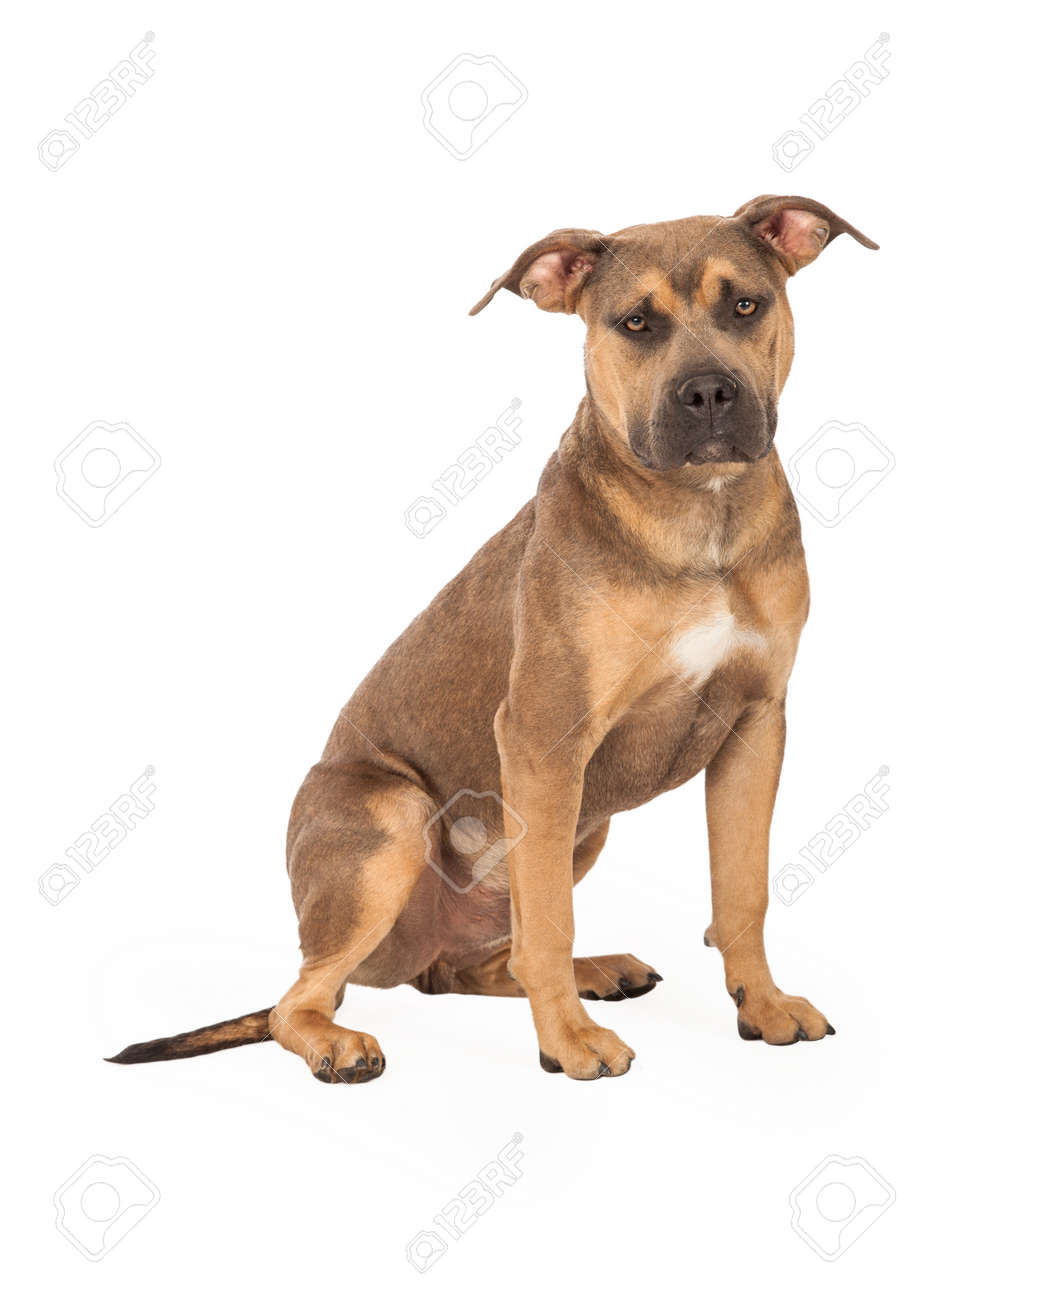 A Well Trained Staffordshire Bull Terrier Mix Breed Dog Sitting